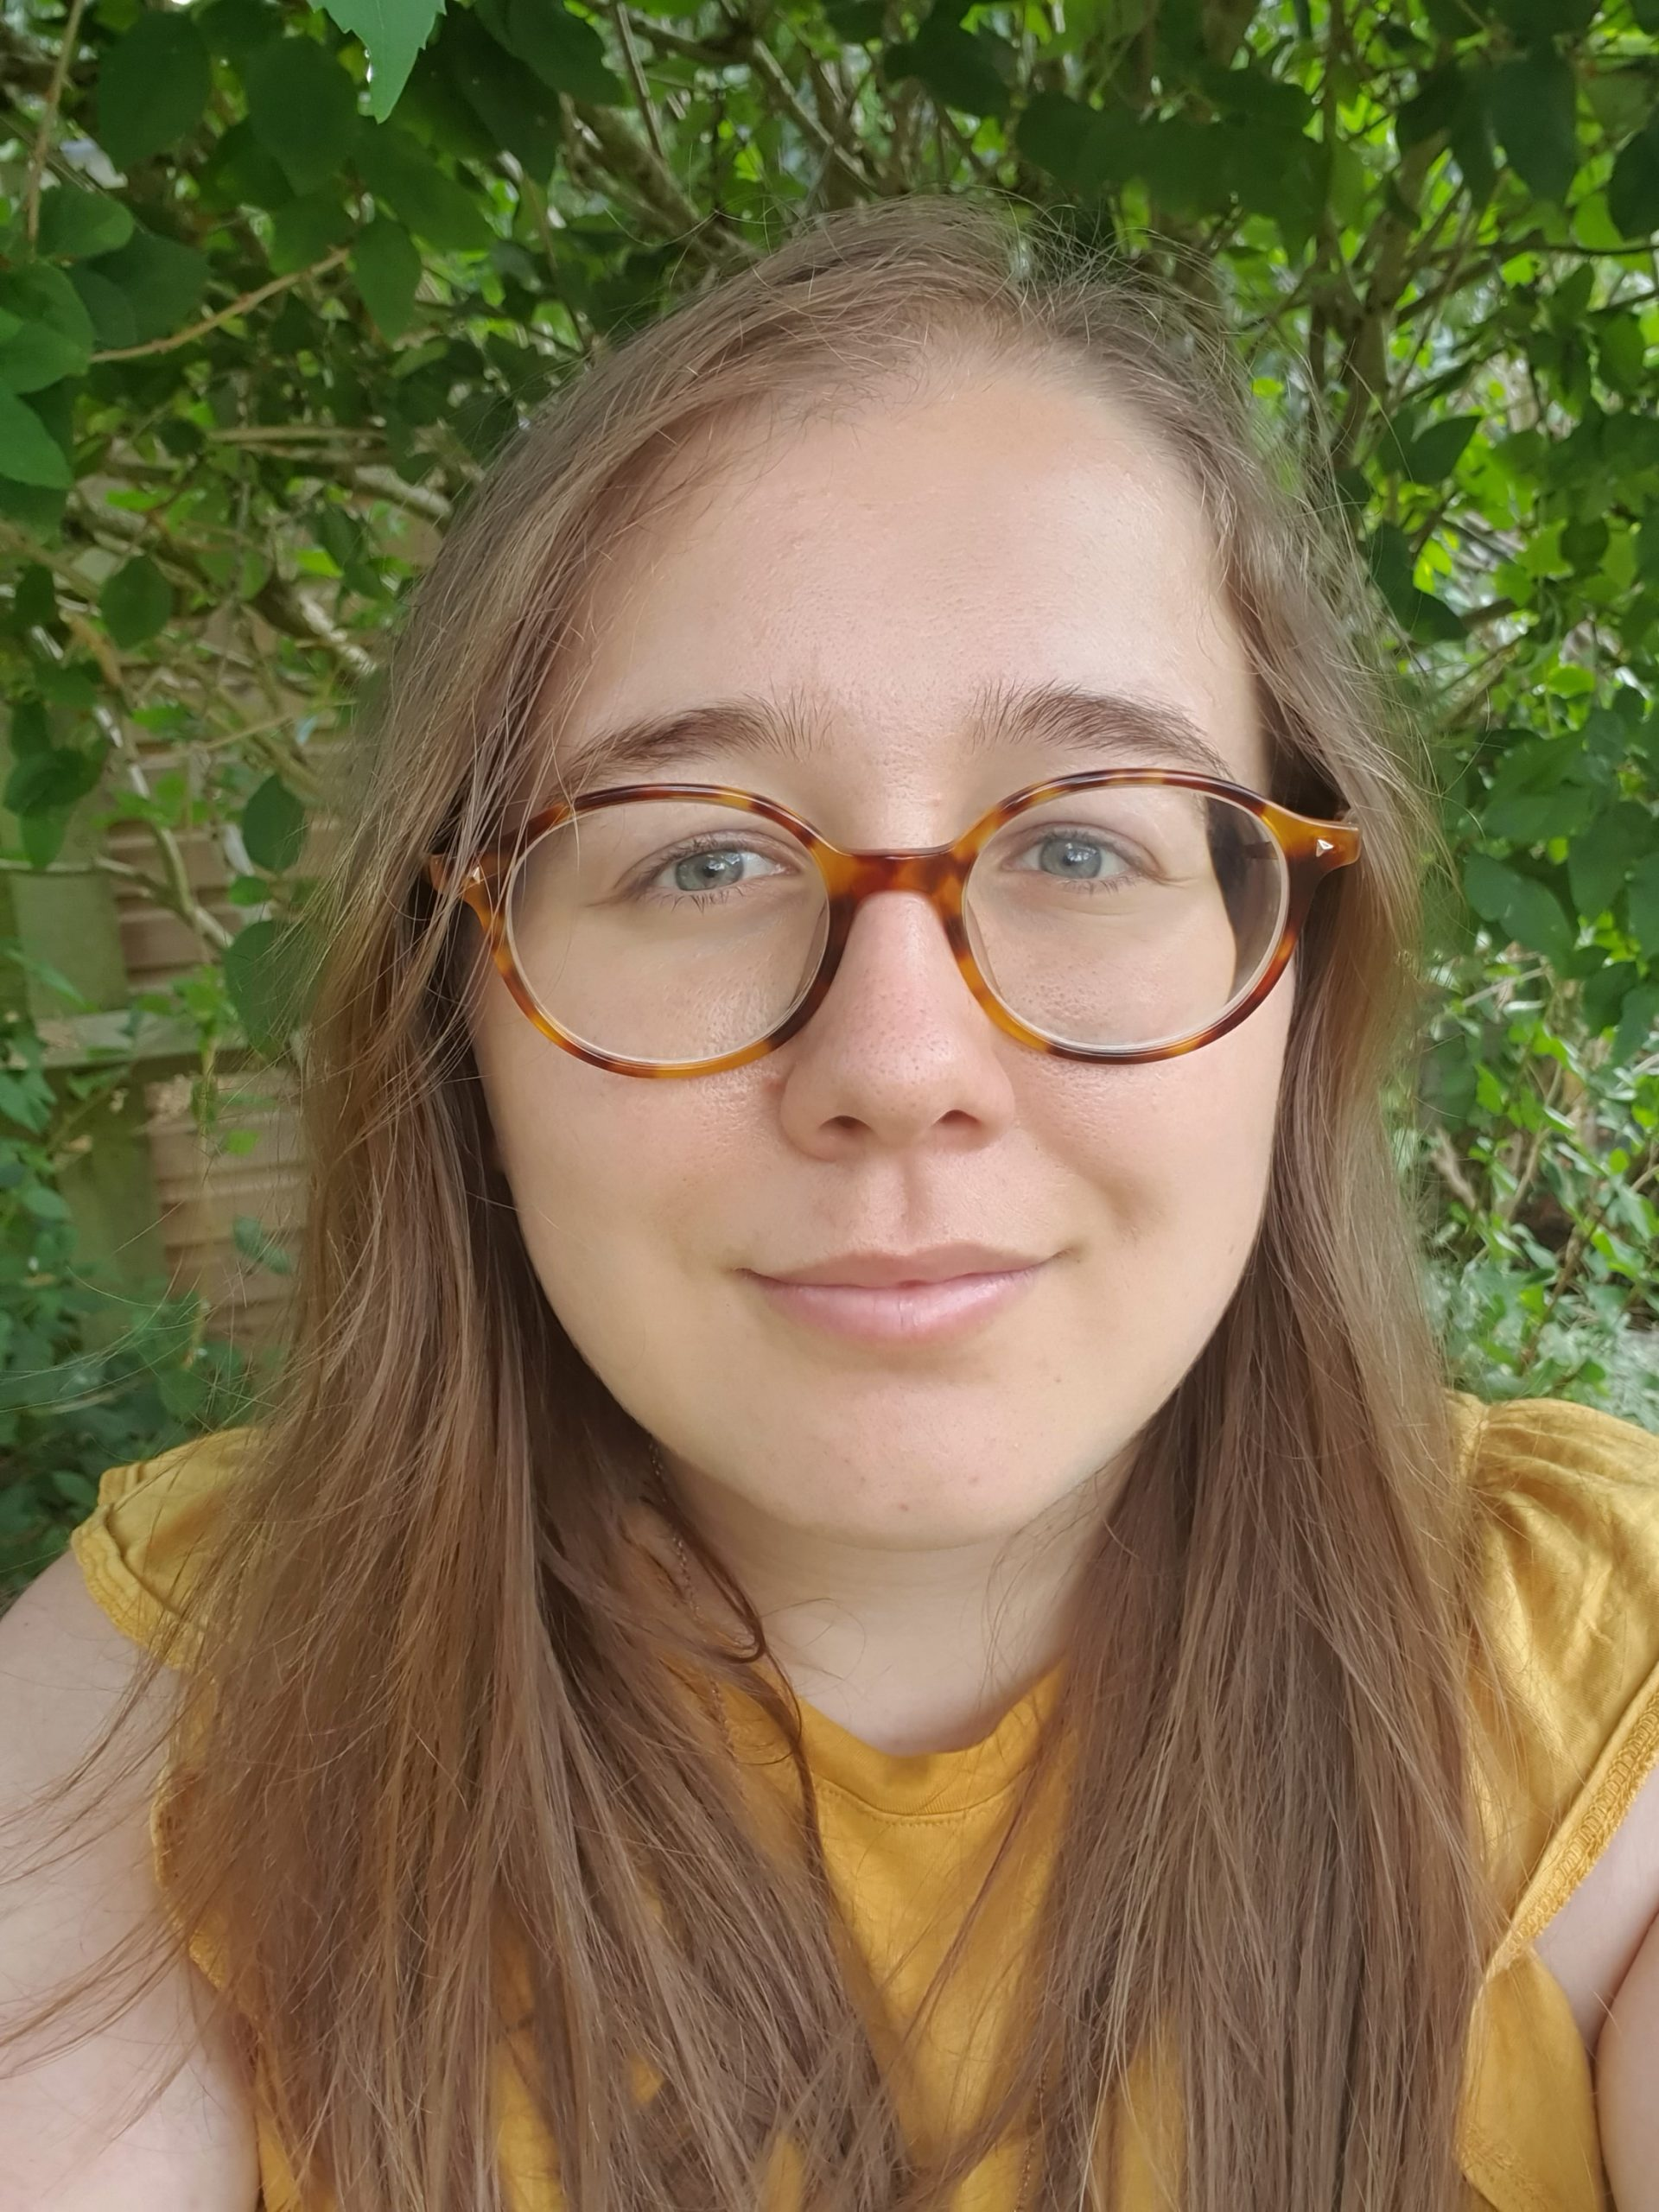 Head and shoulders photo of Brigitta, wearing a yellow top and smiling at the camera.